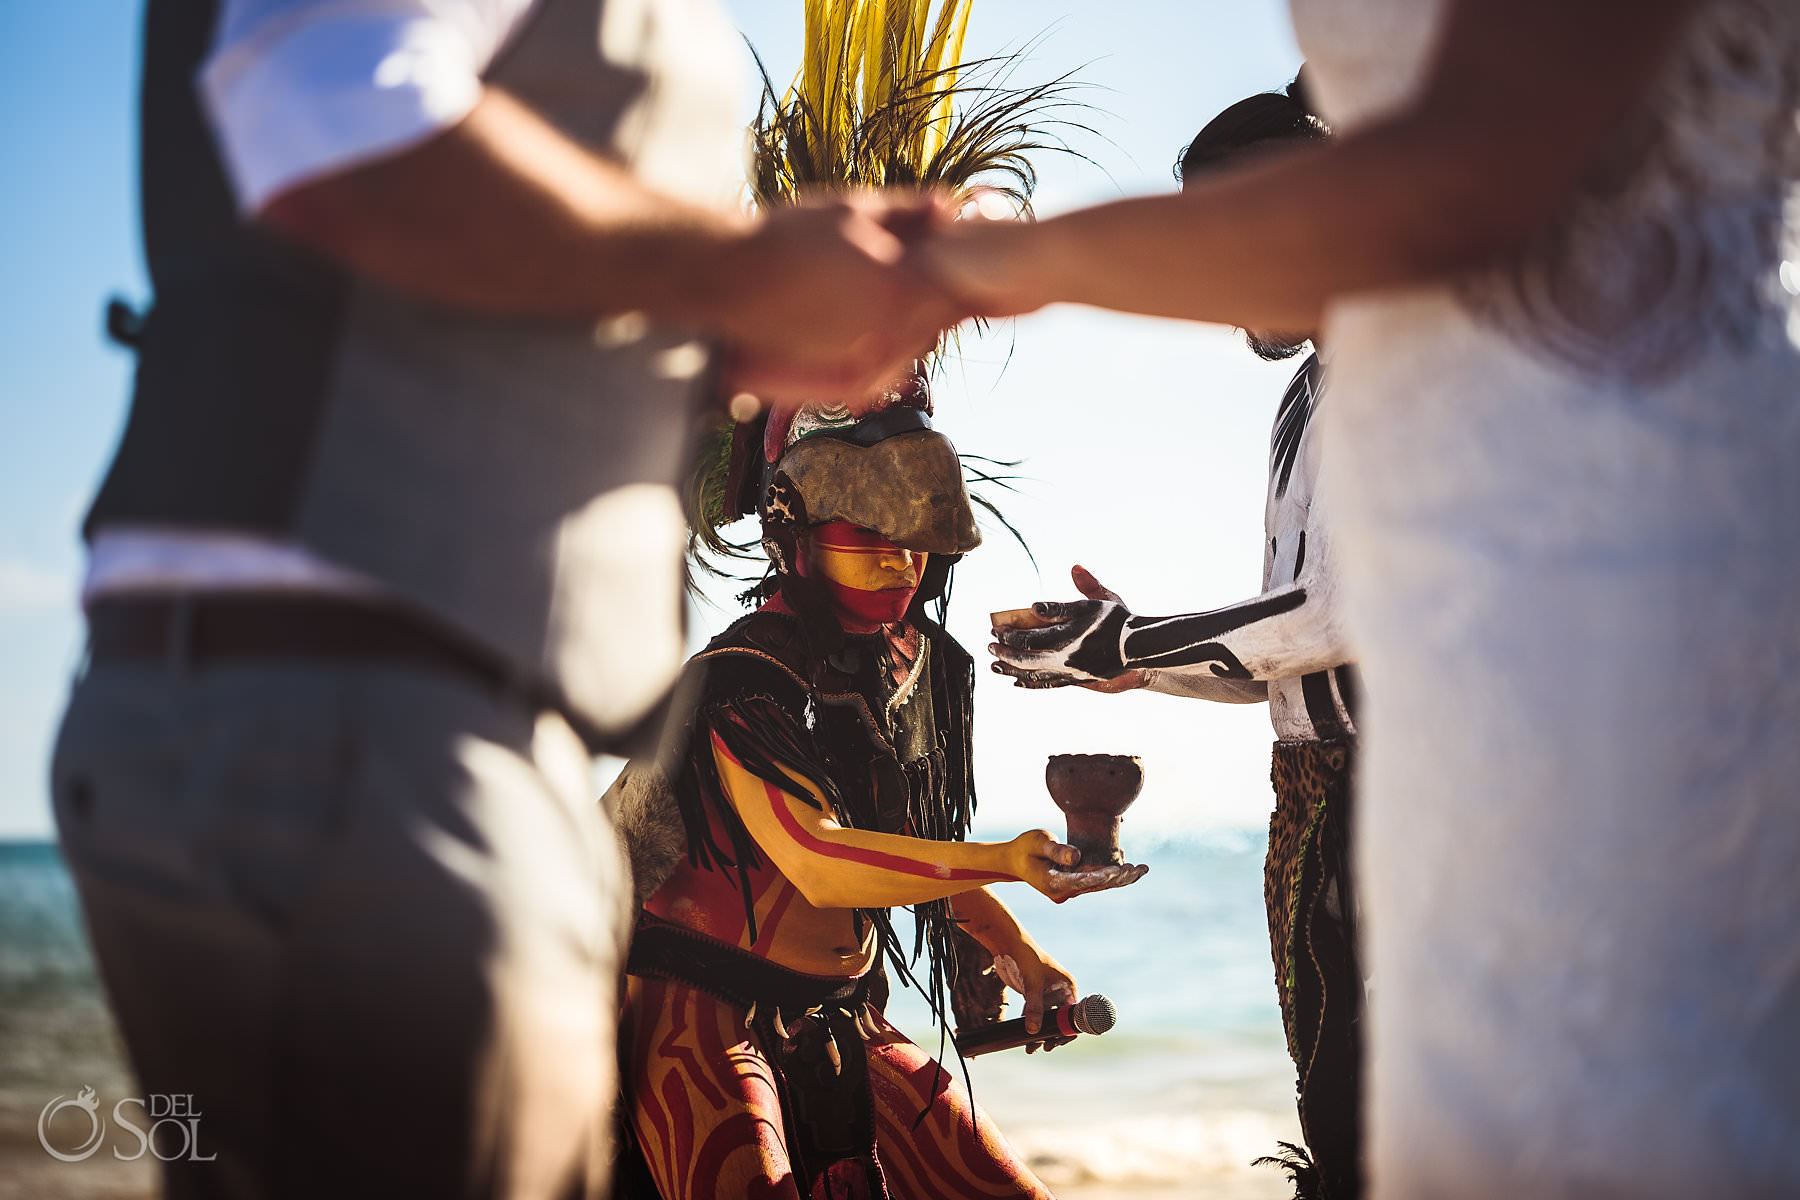 Mayan warrior wearing feathered headdress red yellow body paint blessing bride and groom with copal incense Dreams Tulum